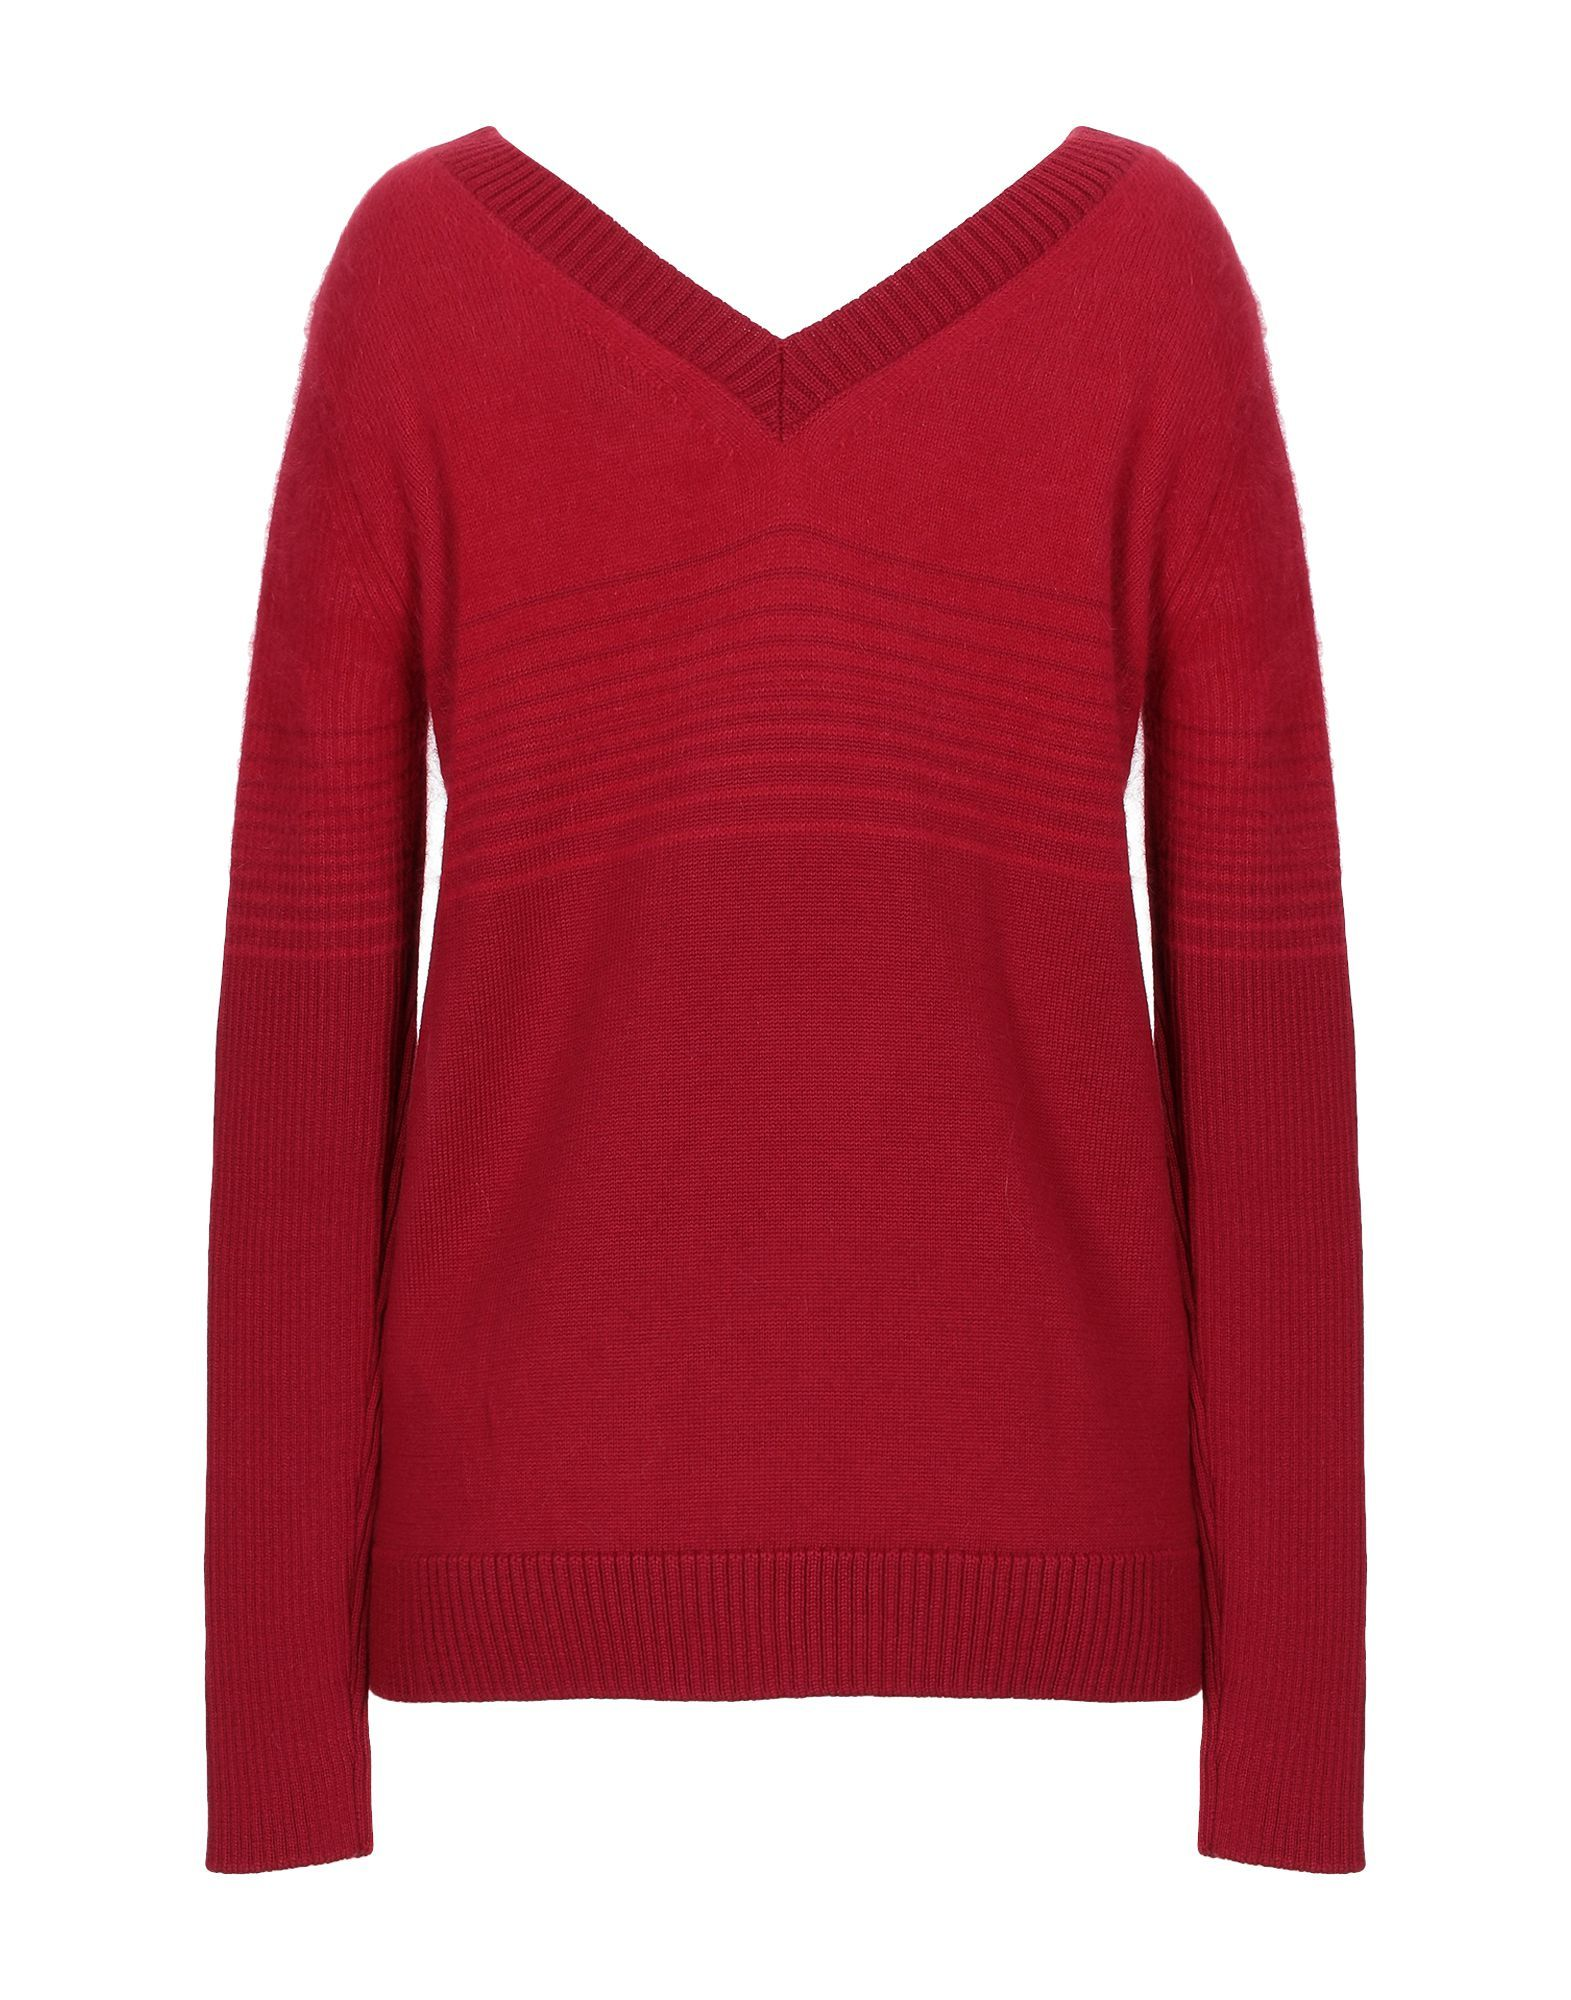 Just Cavalli Red Wool Lightweight Knit Jumper